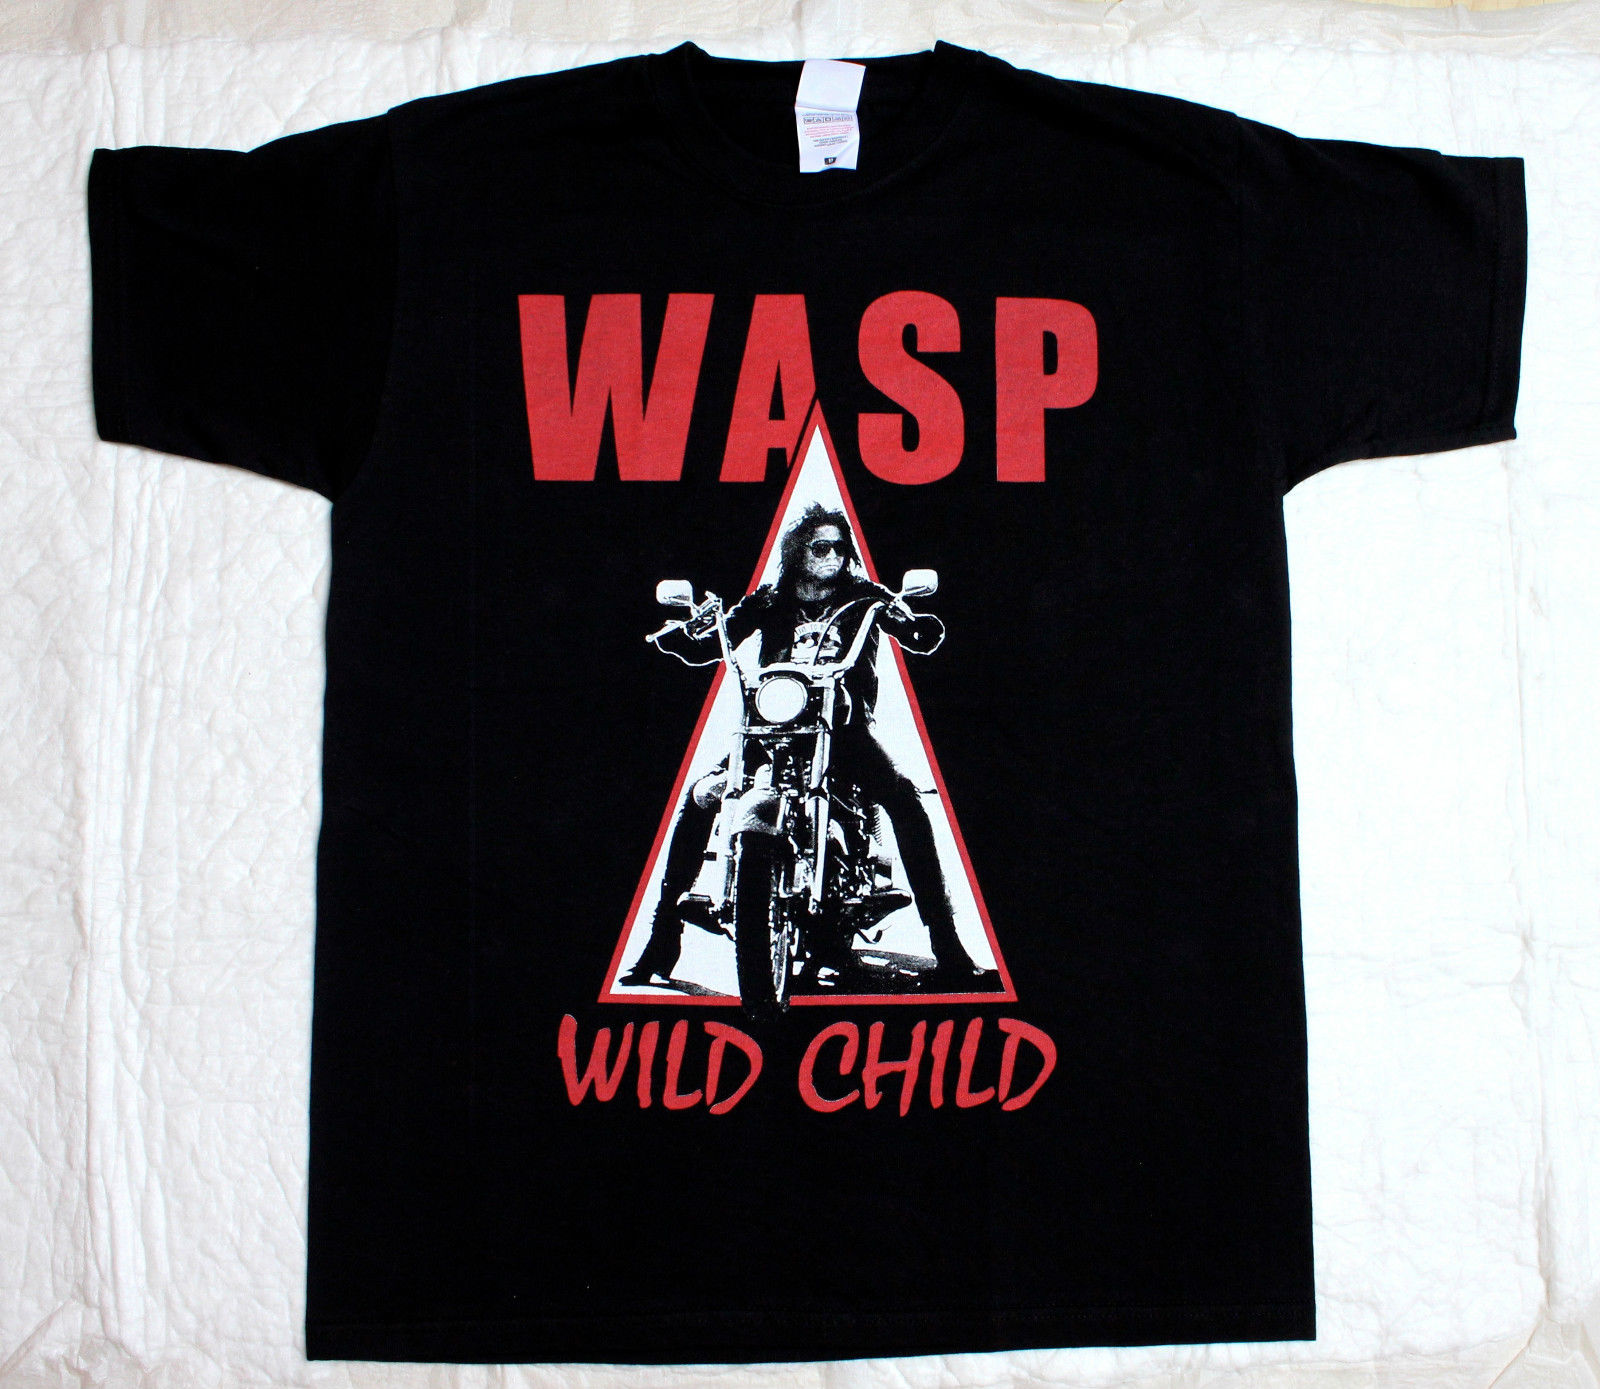 W.A.S.P. WILD CHILD85 HEAVY METAL BAND WASP TWISTED SISTER NEW BLACK T-SHIRT For Male/Boy T shirt